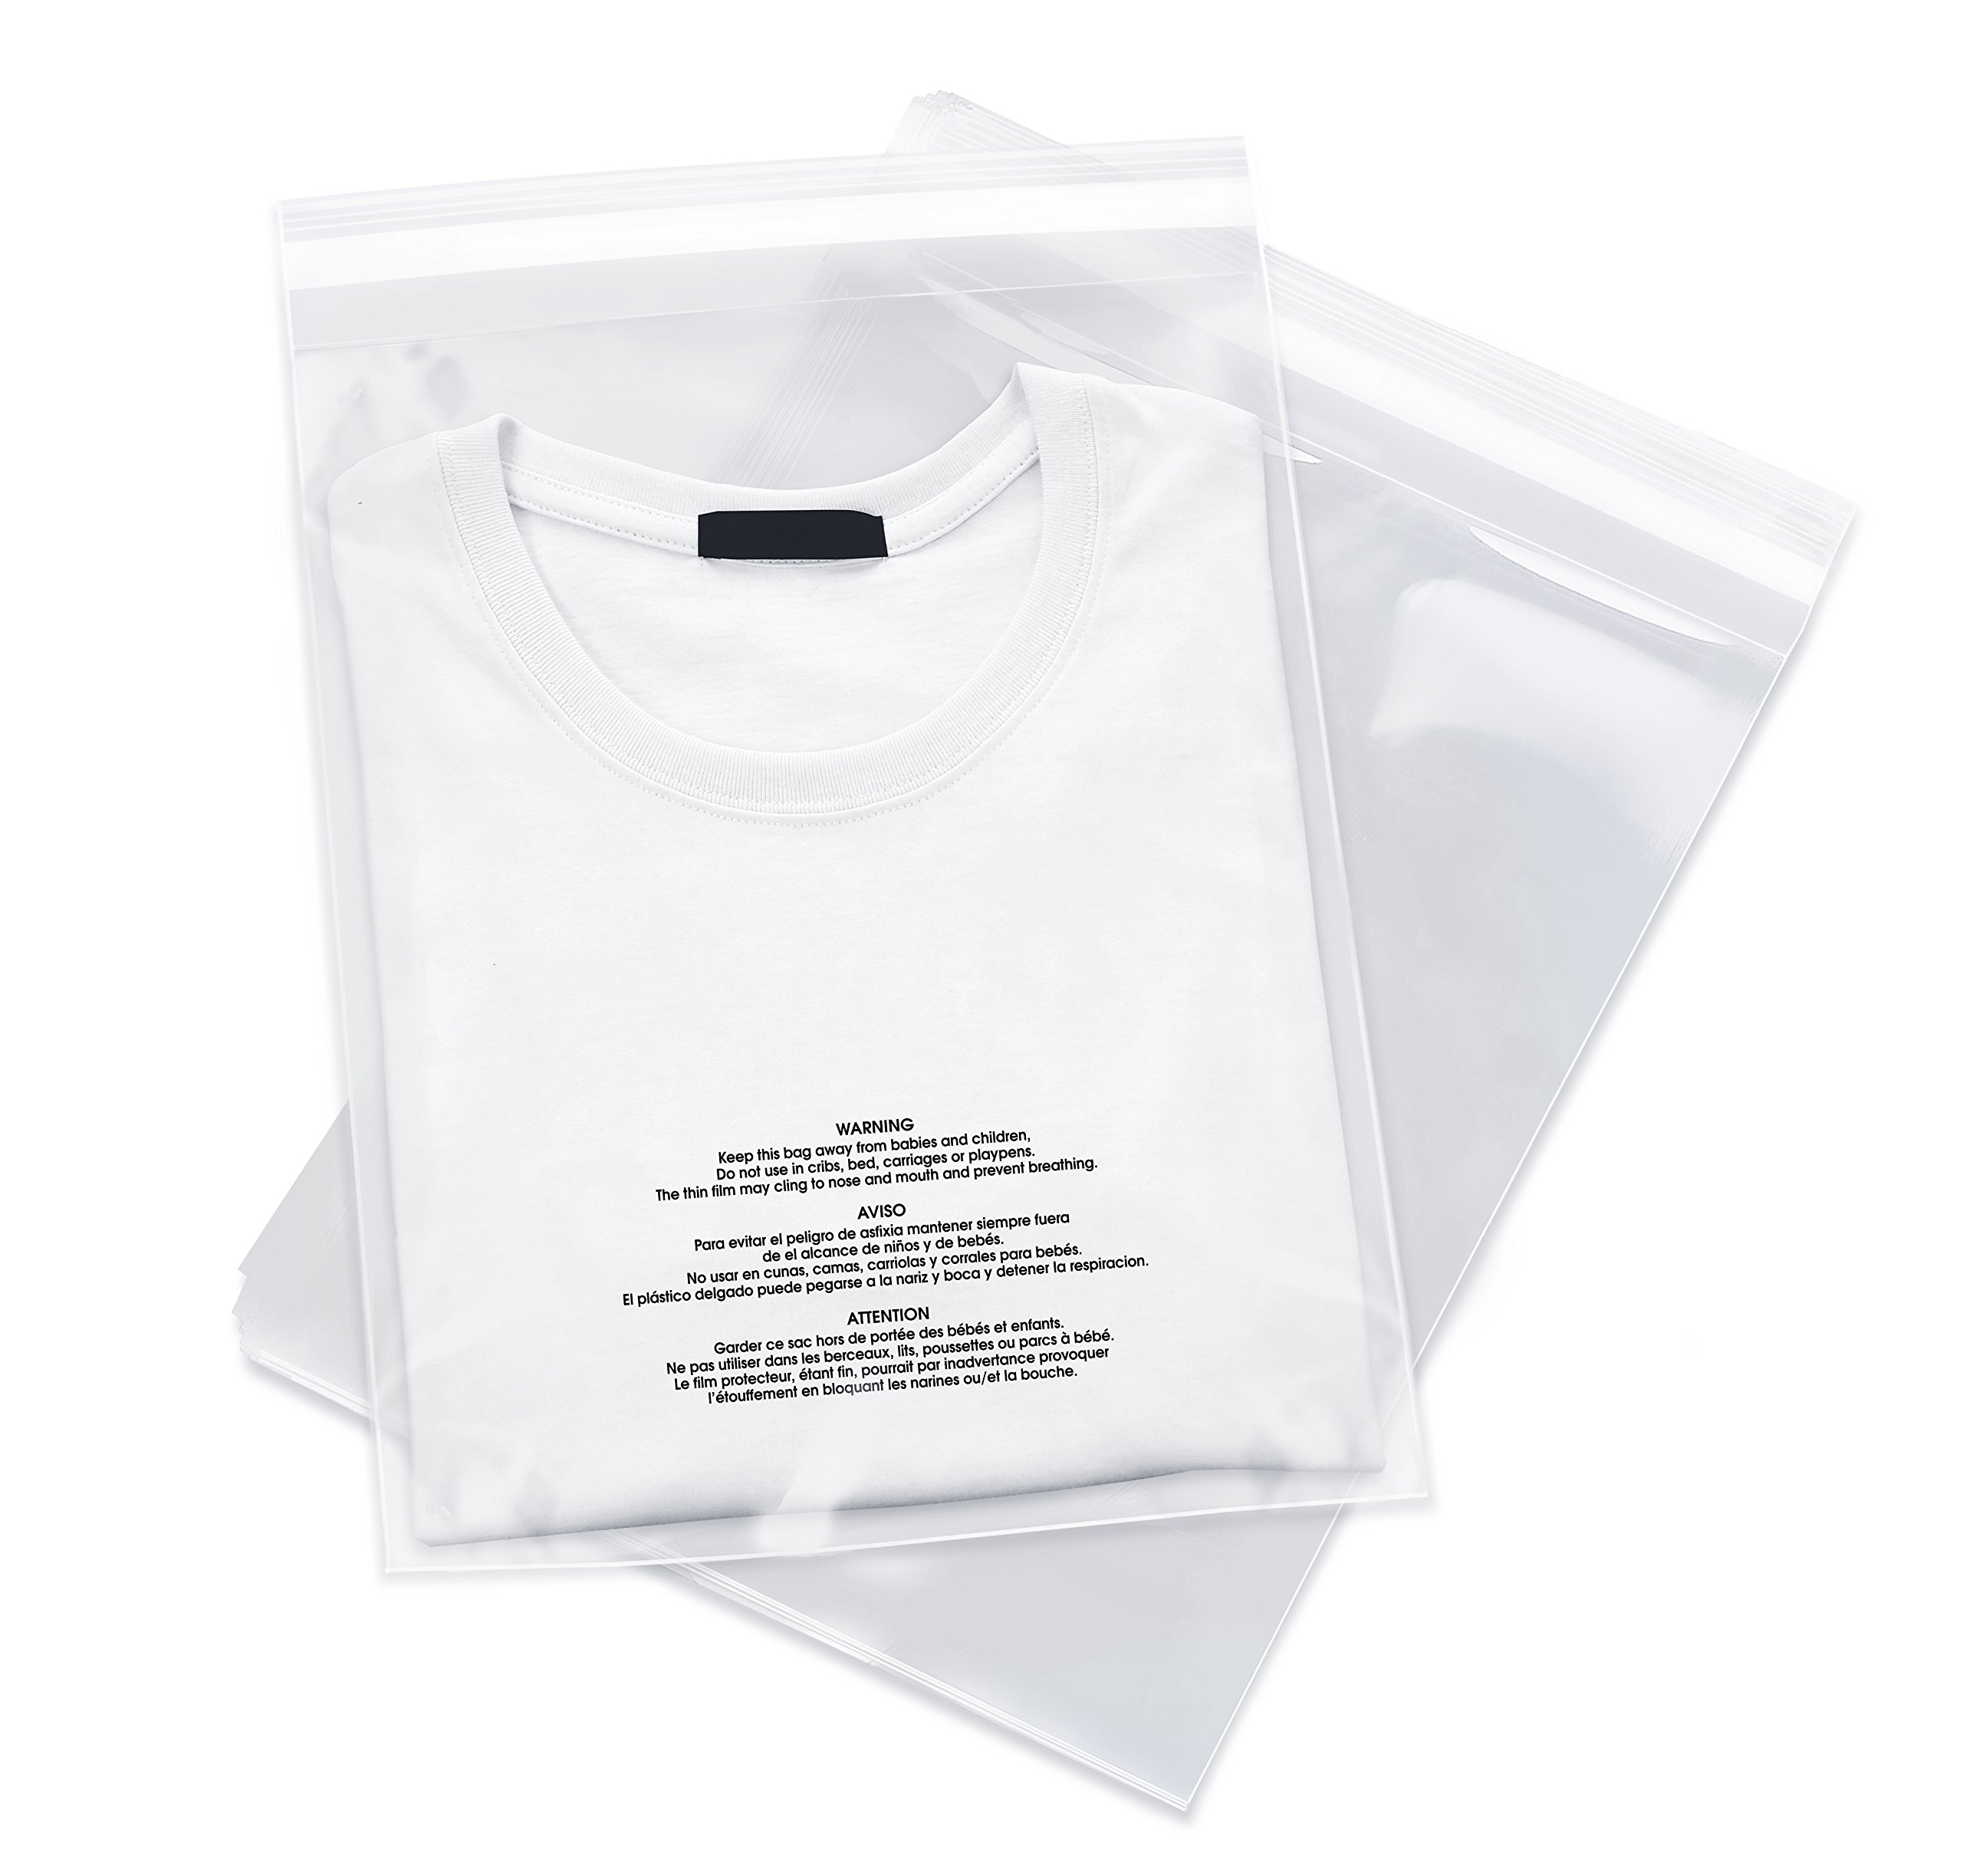 100 Count - 9 X 12 Self Seal 1.5 Mil Clear Plastic Poly Bags with Suffocation Warning - Permanent Adhesive by Spartan Industrial (More Sizes Available) by Spartan Industrial (Image #1)